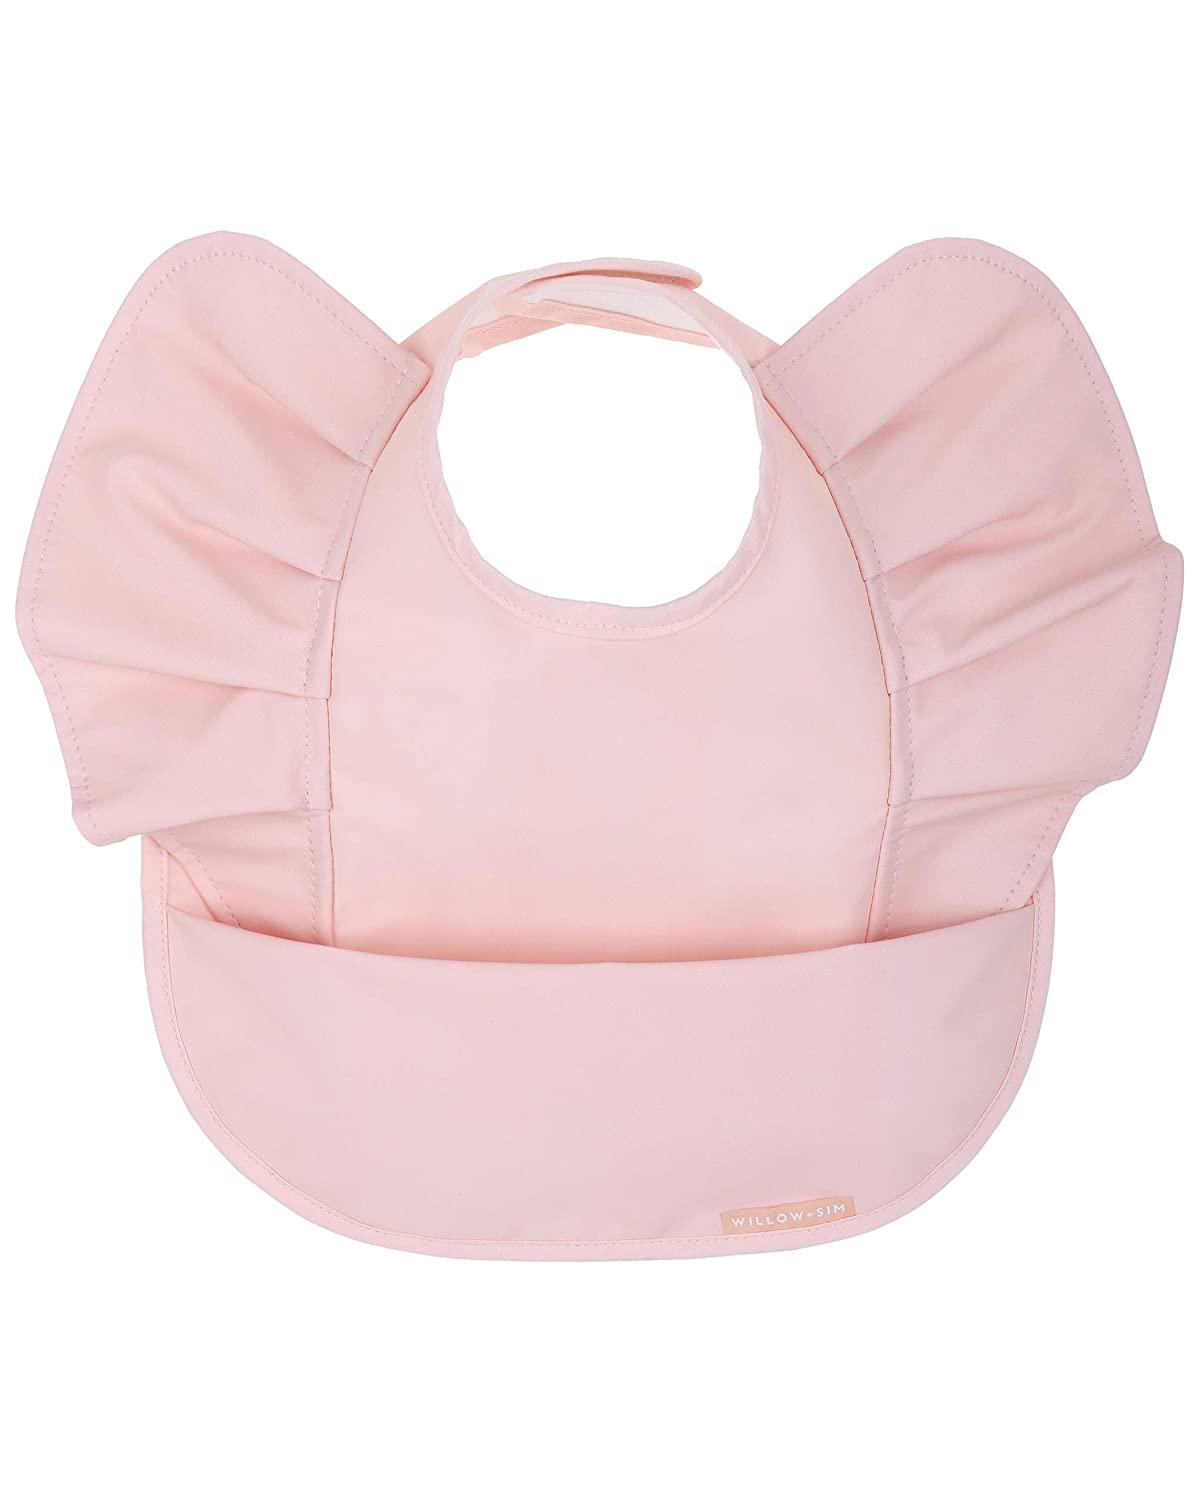 Waterproof Baby Bib for Baby Girl - Better Than Silicone, Wipe Clean and Washable - Toddler Bibs with Food Catcher, Ideal Feeding bib for Babies and Infants - No Sleeve - Scallop Shell